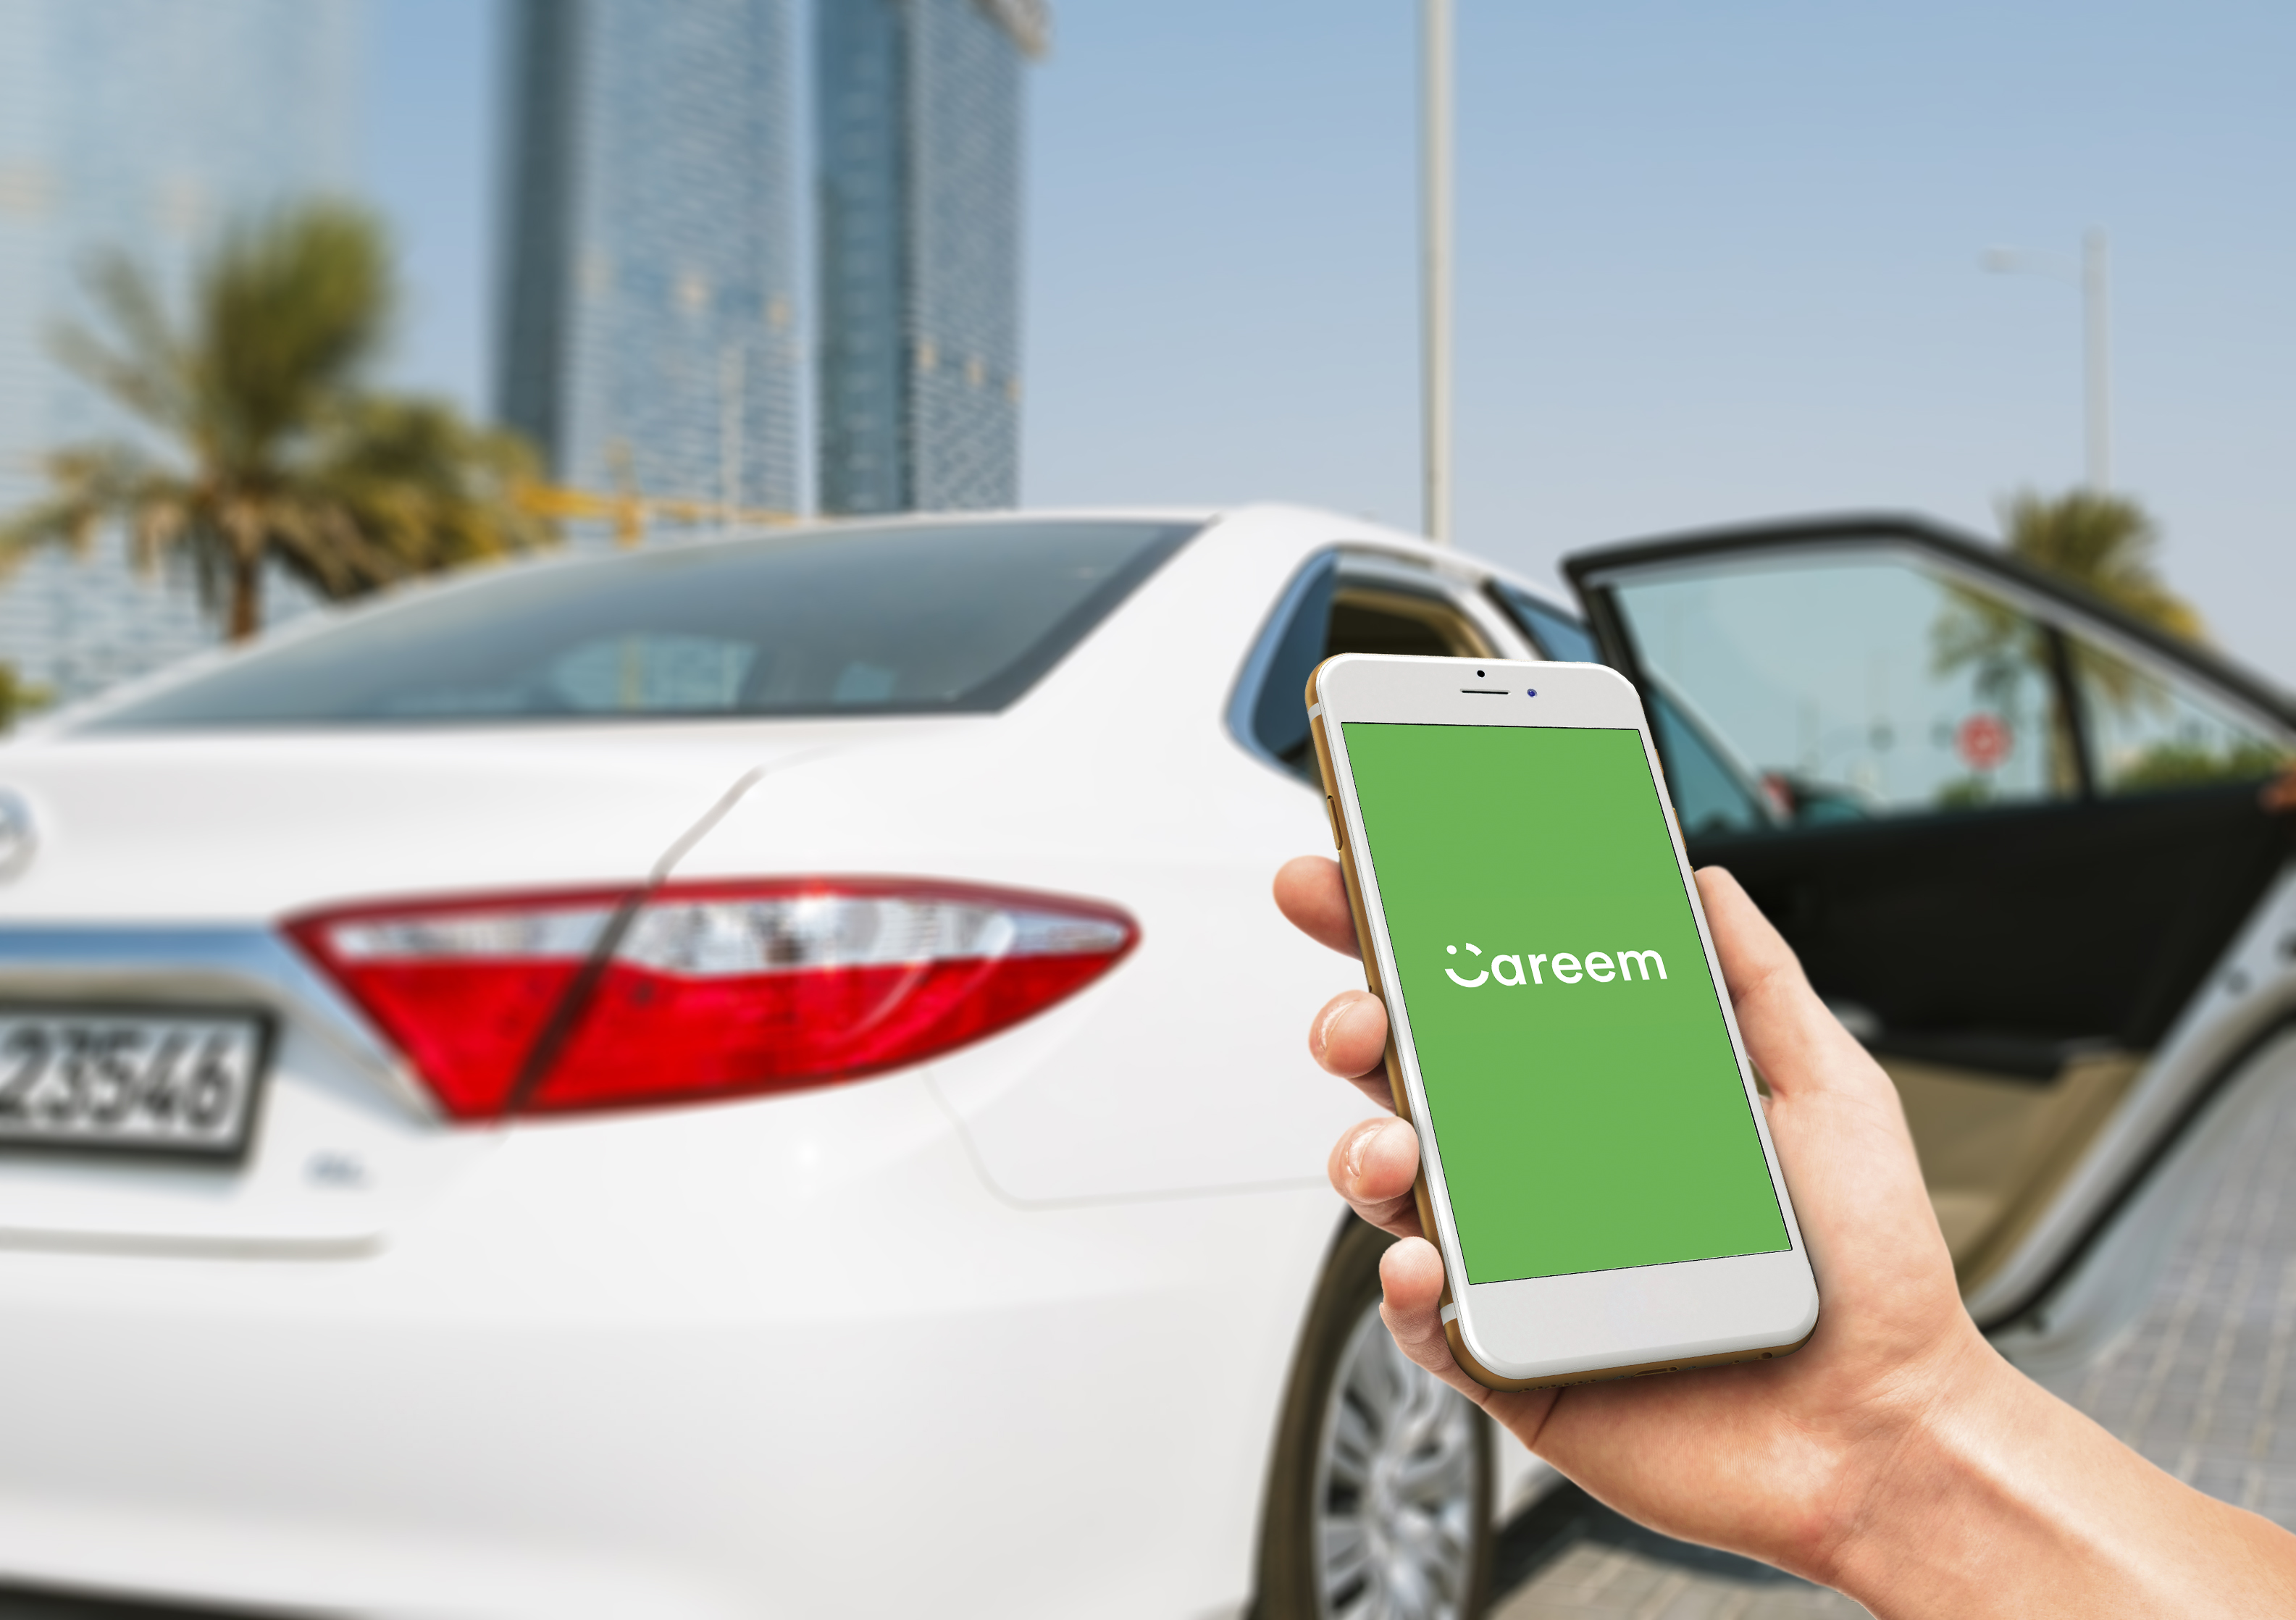 Ride-sharing app Careem says it was hacked